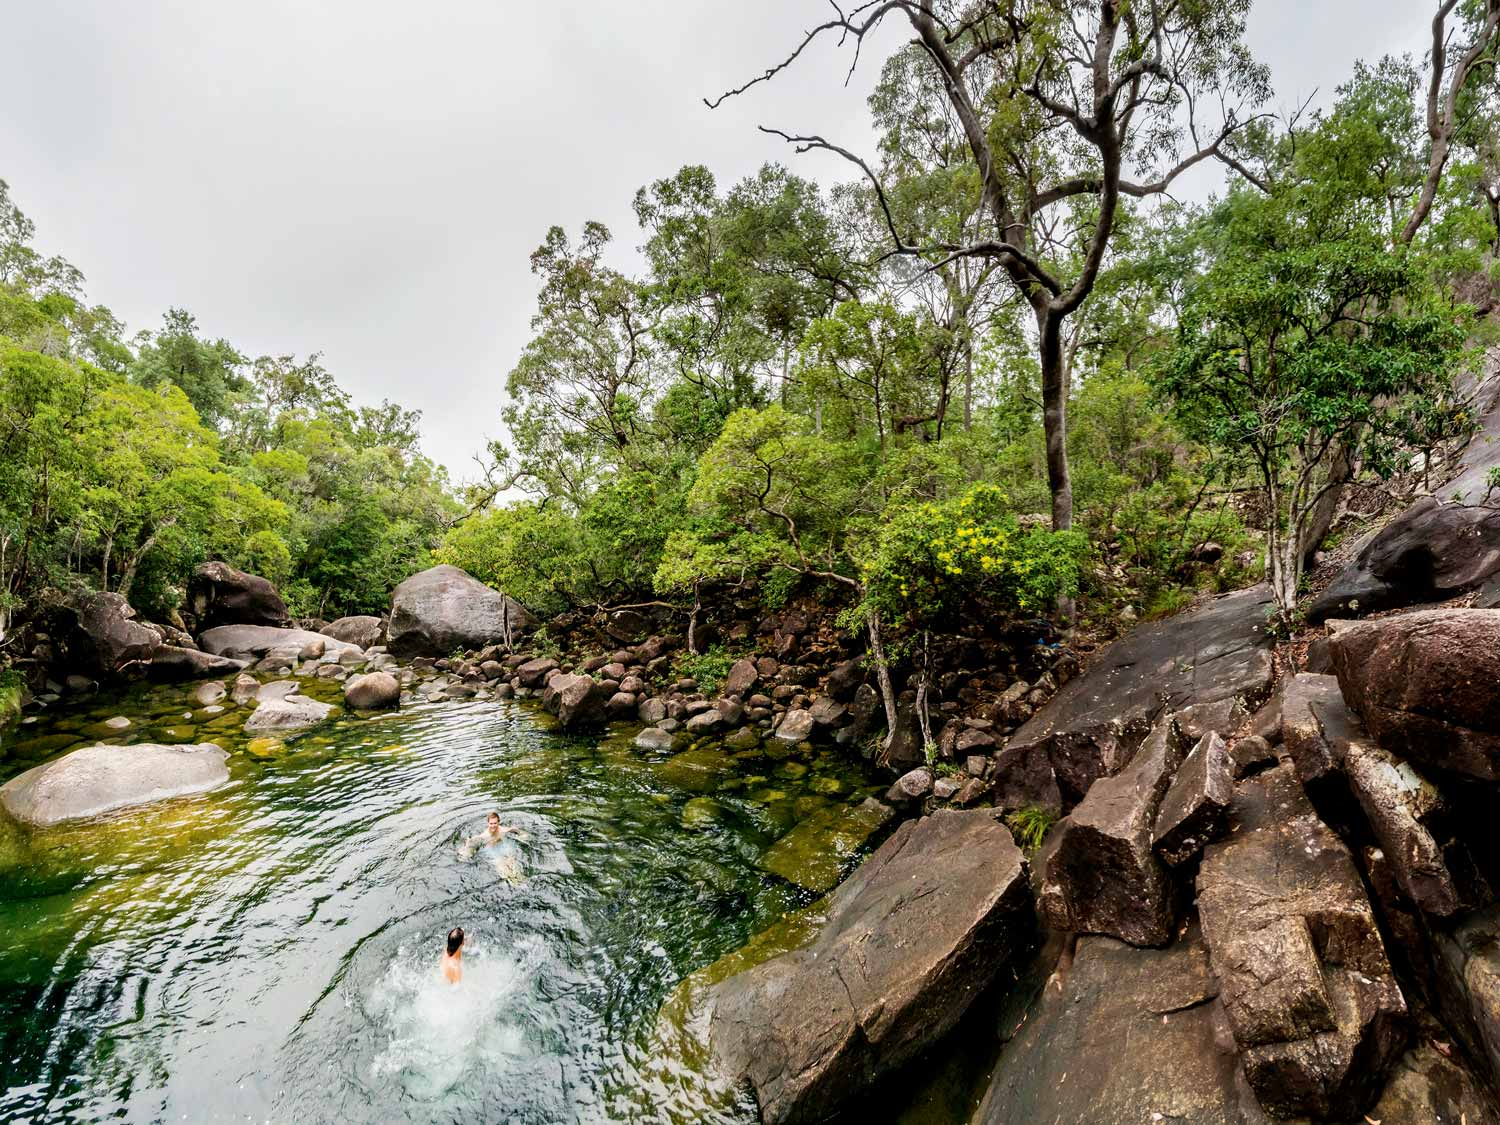 Splashing-around-in-one-of-Hinchinbrook's-many-natural-swimming-holes--Credit---Tourism-and-Events-Queensland.jpg